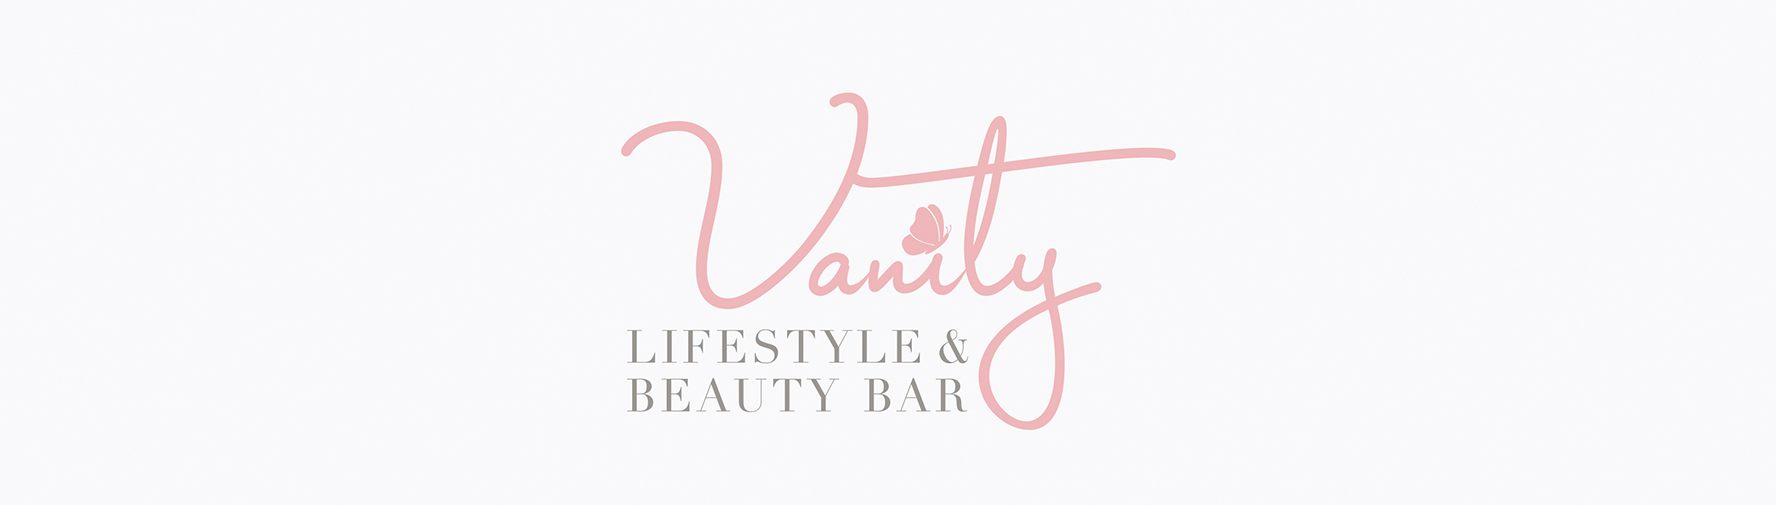 Vanity Lifestyle and Beauty Bar